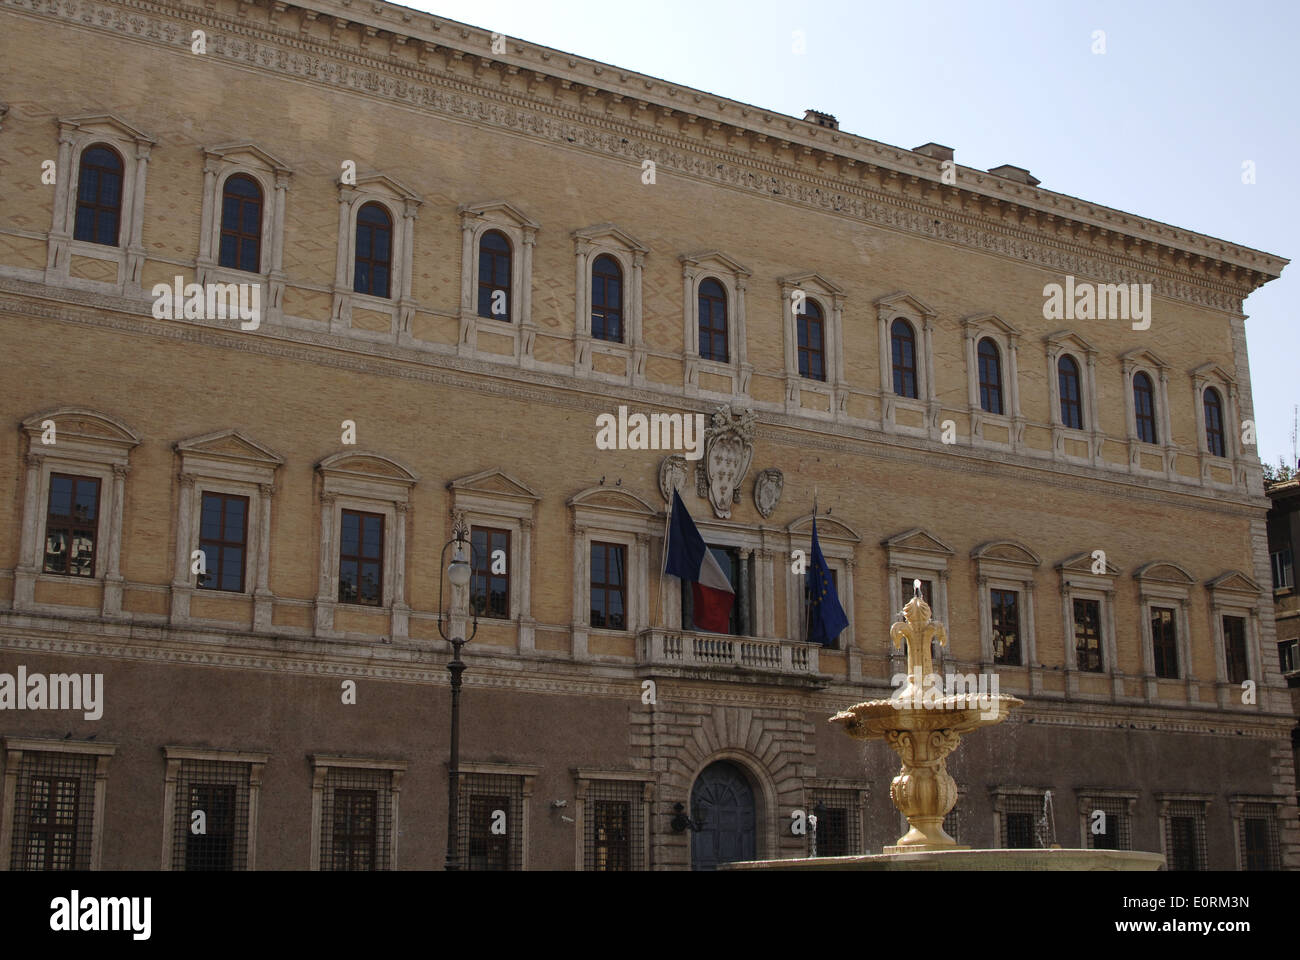 Italy. Rome. Palazzo Farnese. High Renaissance. It was designed in 1517 for the Farnese family. Facade. - Stock Image